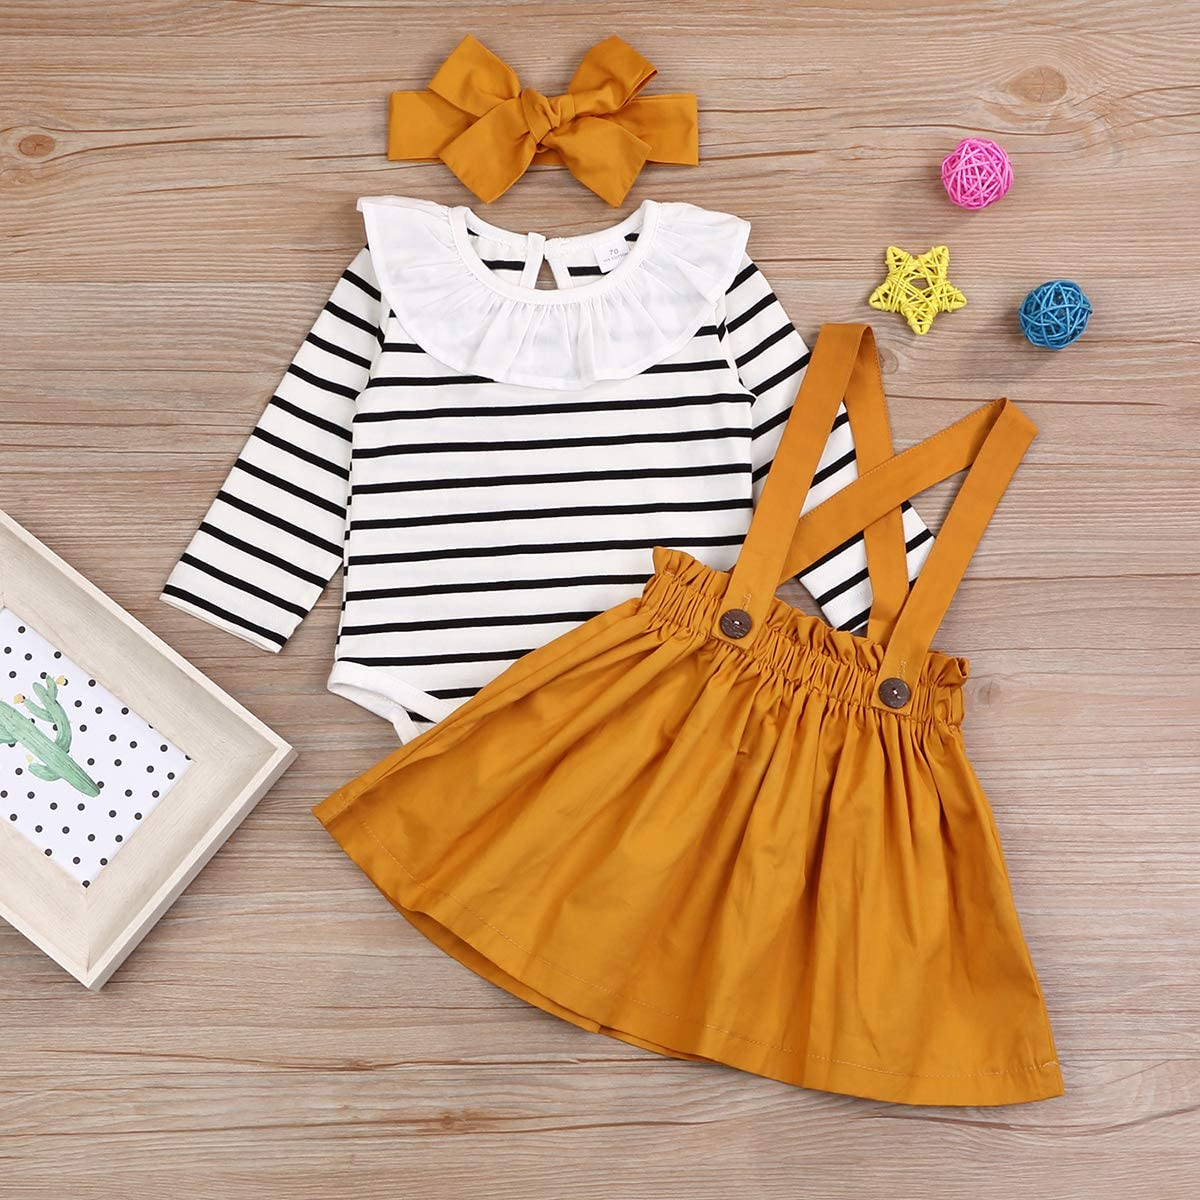 Toddler Little Kid Girls Skirt Outfit T-Shirt Top Overall Suspender Skirt Headband Clothes Set